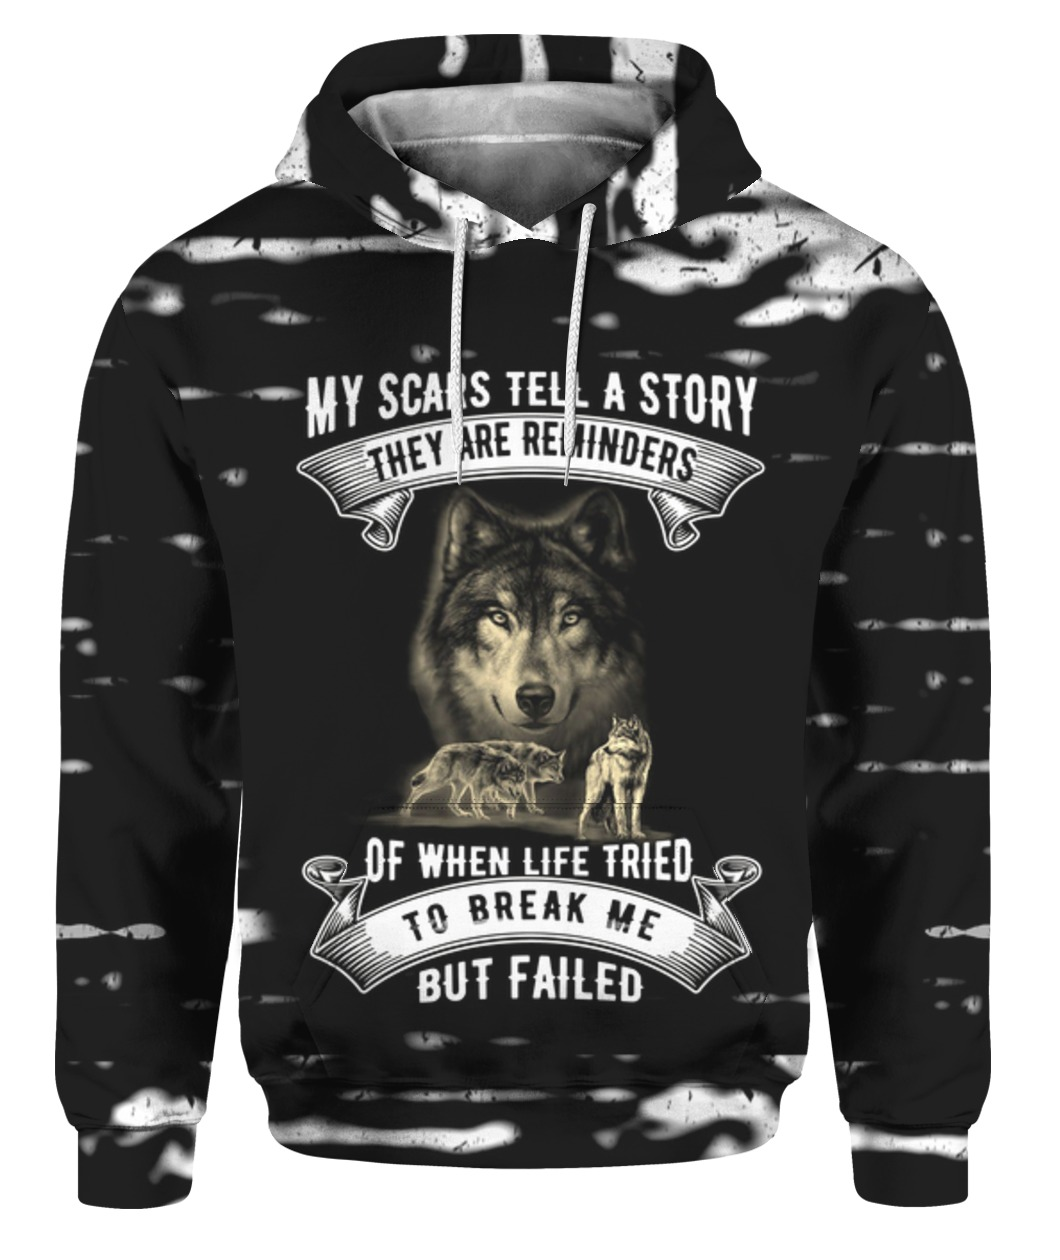 Wolf my scars tell a story they are reminders 3d all over print hoodie, t-shirt